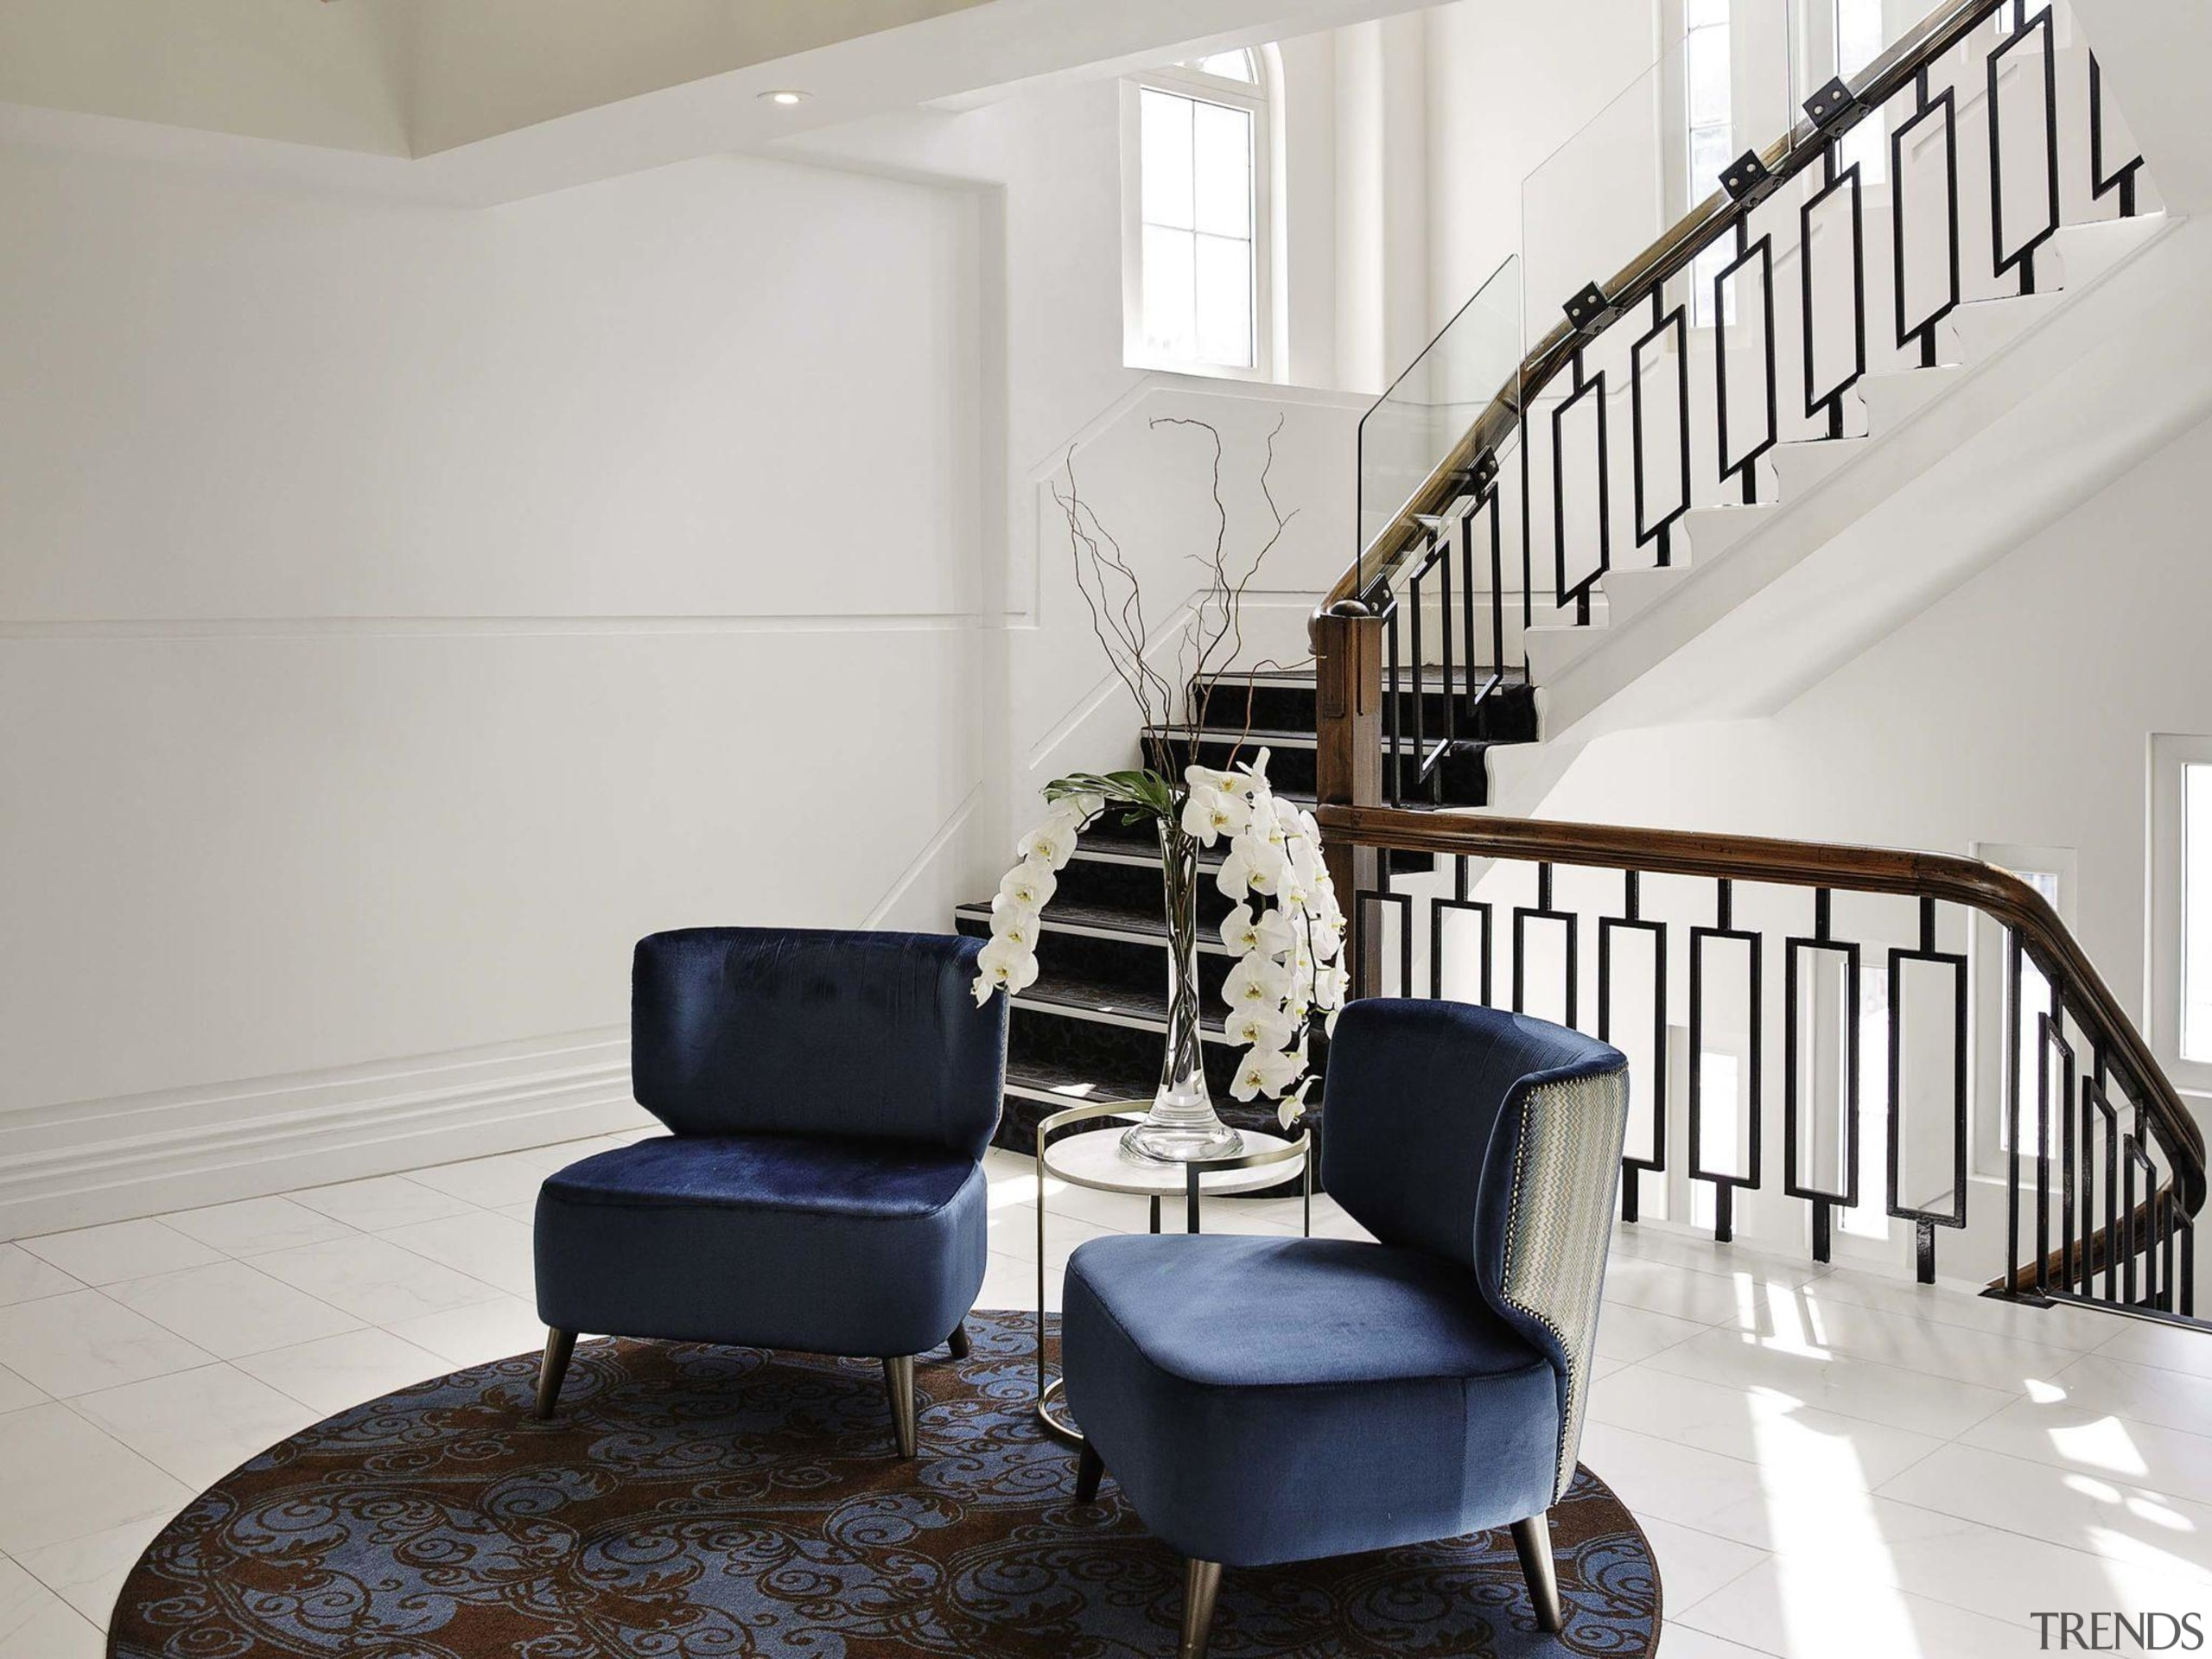 Grand Windsor 4 - chair | floor | chair, floor, home, interior design, living room, stairs, gray